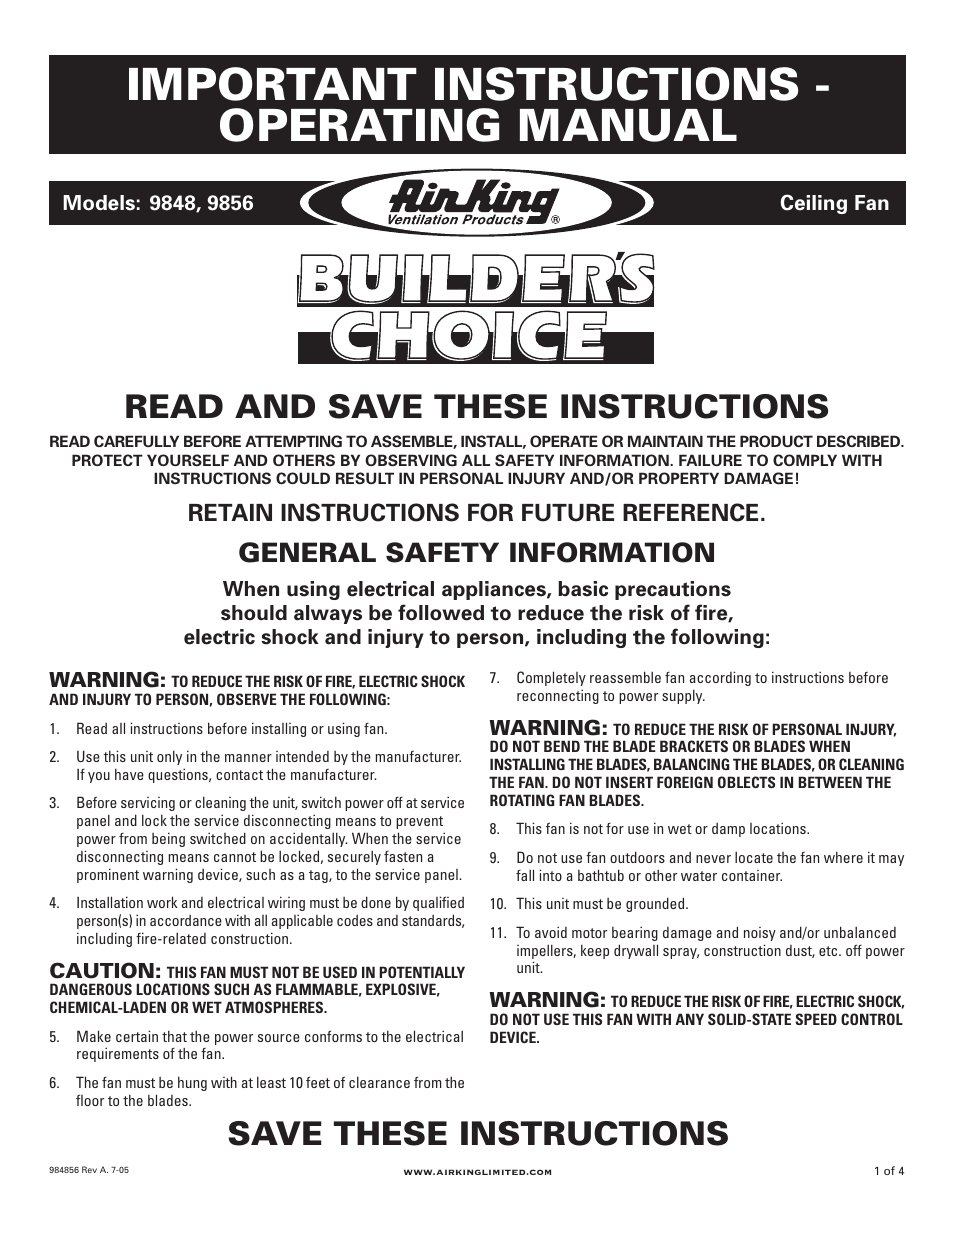 Air King 9848 User Manual | 4 pages | Also for: 9856